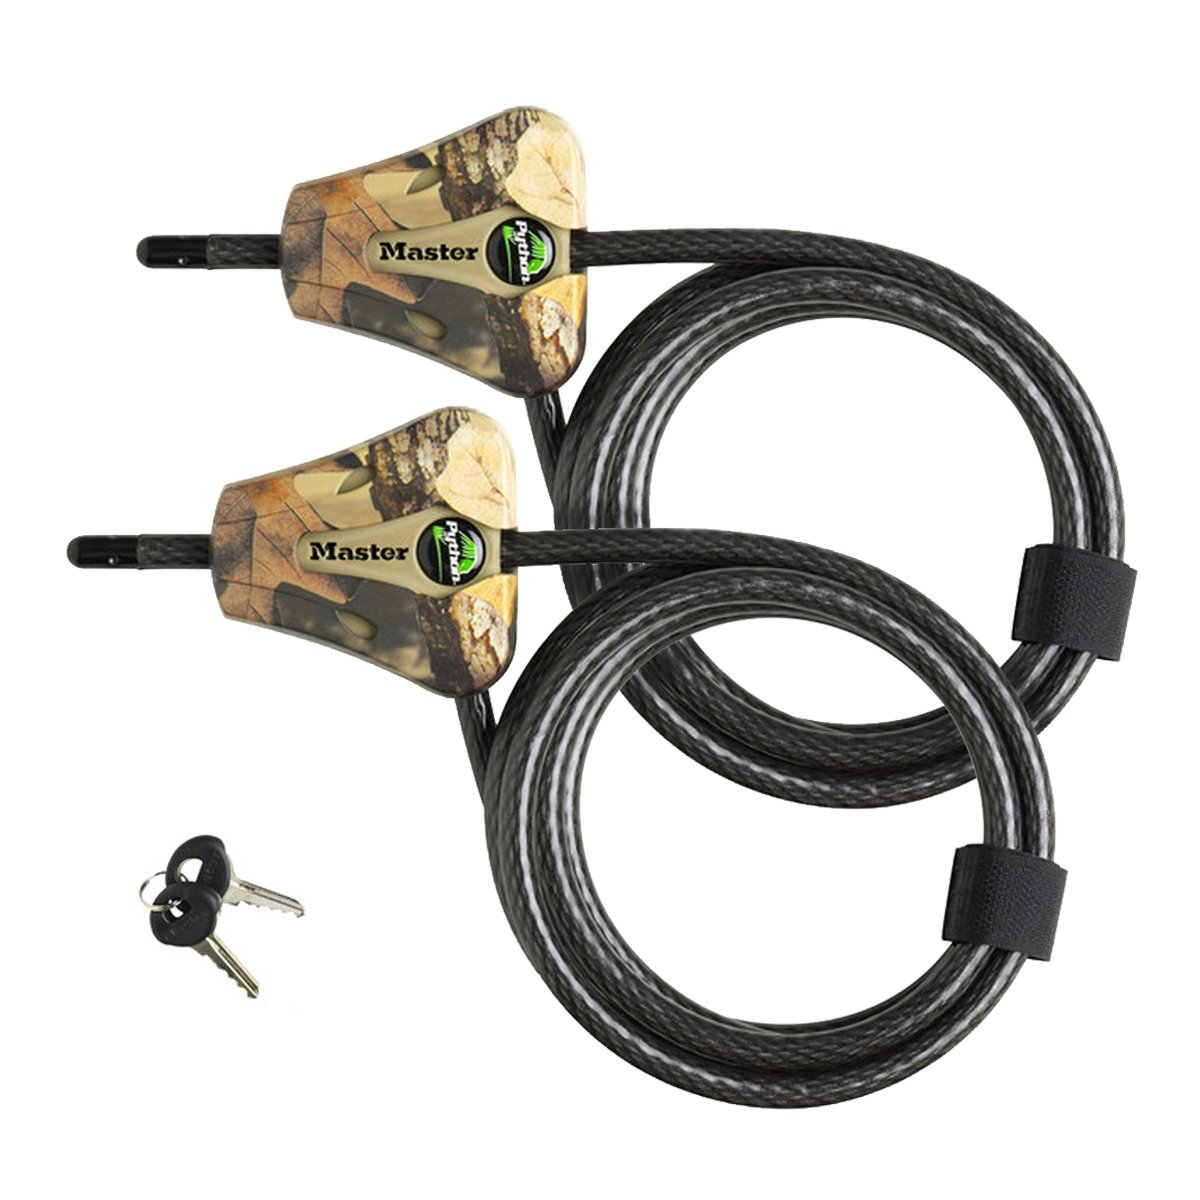 Master Lock Python Trail Camera Adjustable Camouflage Cable Locks 8418KA-2 CAMO